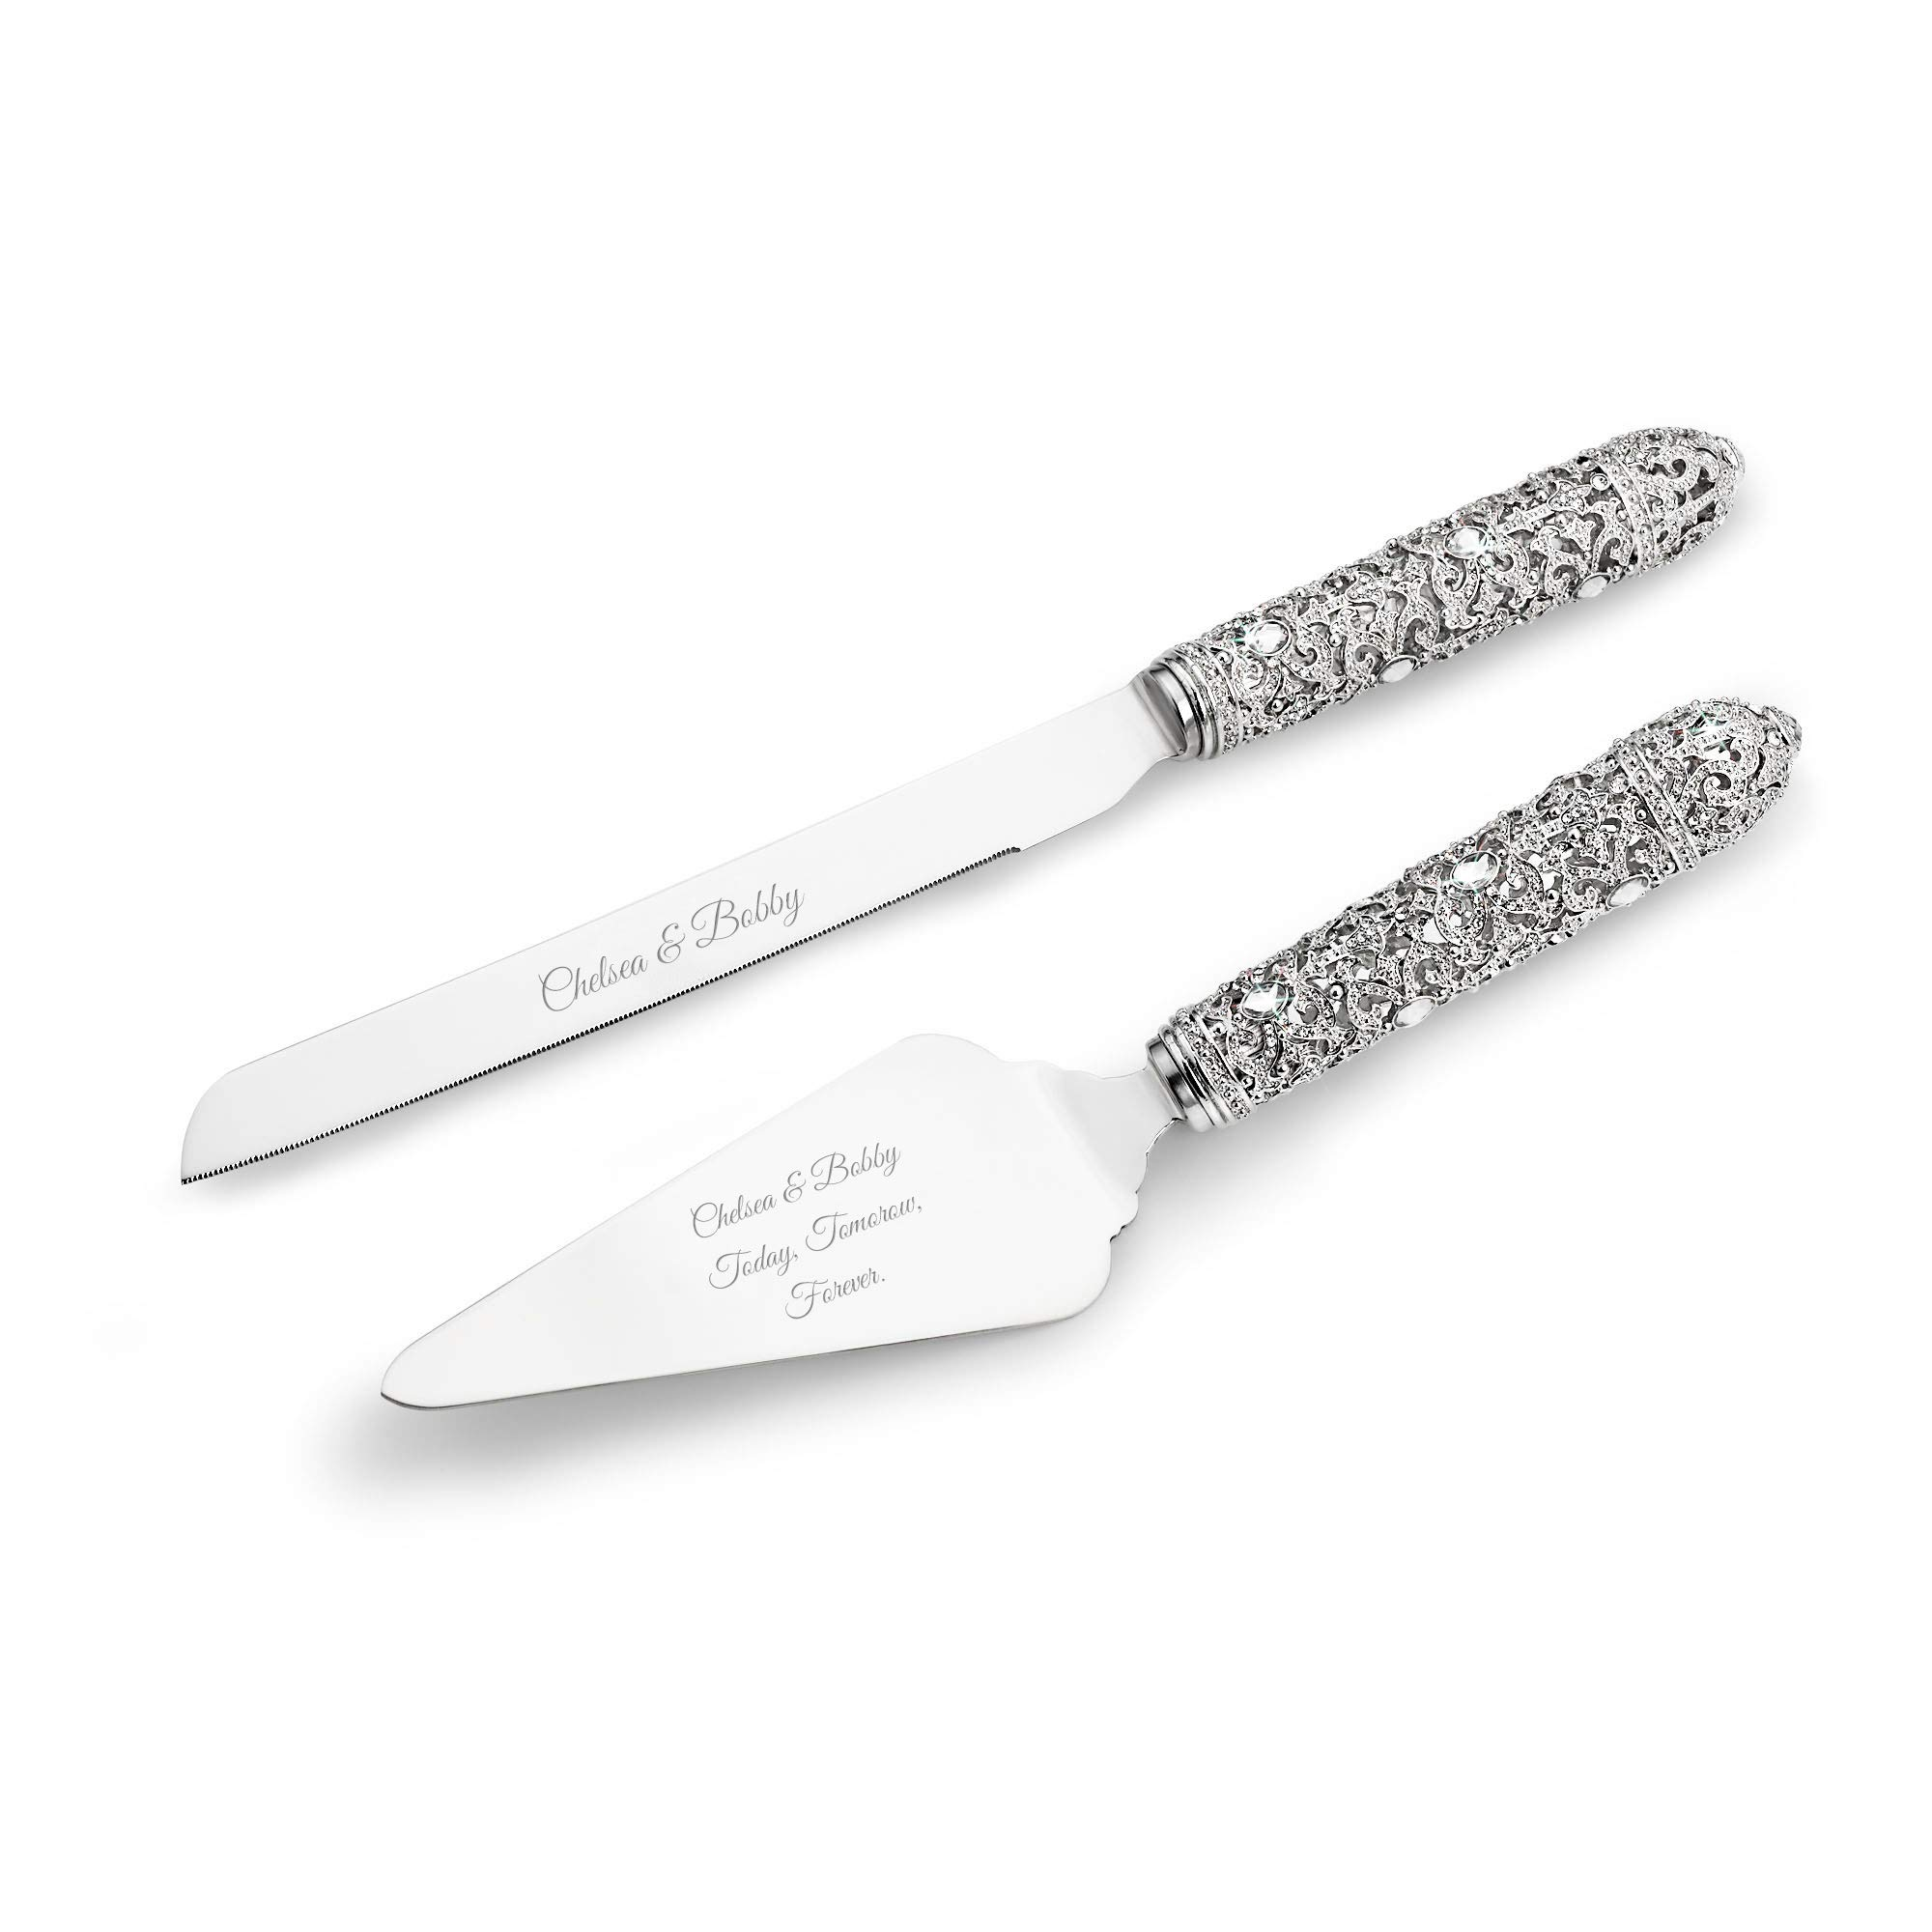 Things Remembered Personalized Fifth Avenue Filigree Cake Server Set with Engraving Included by Things Remembered